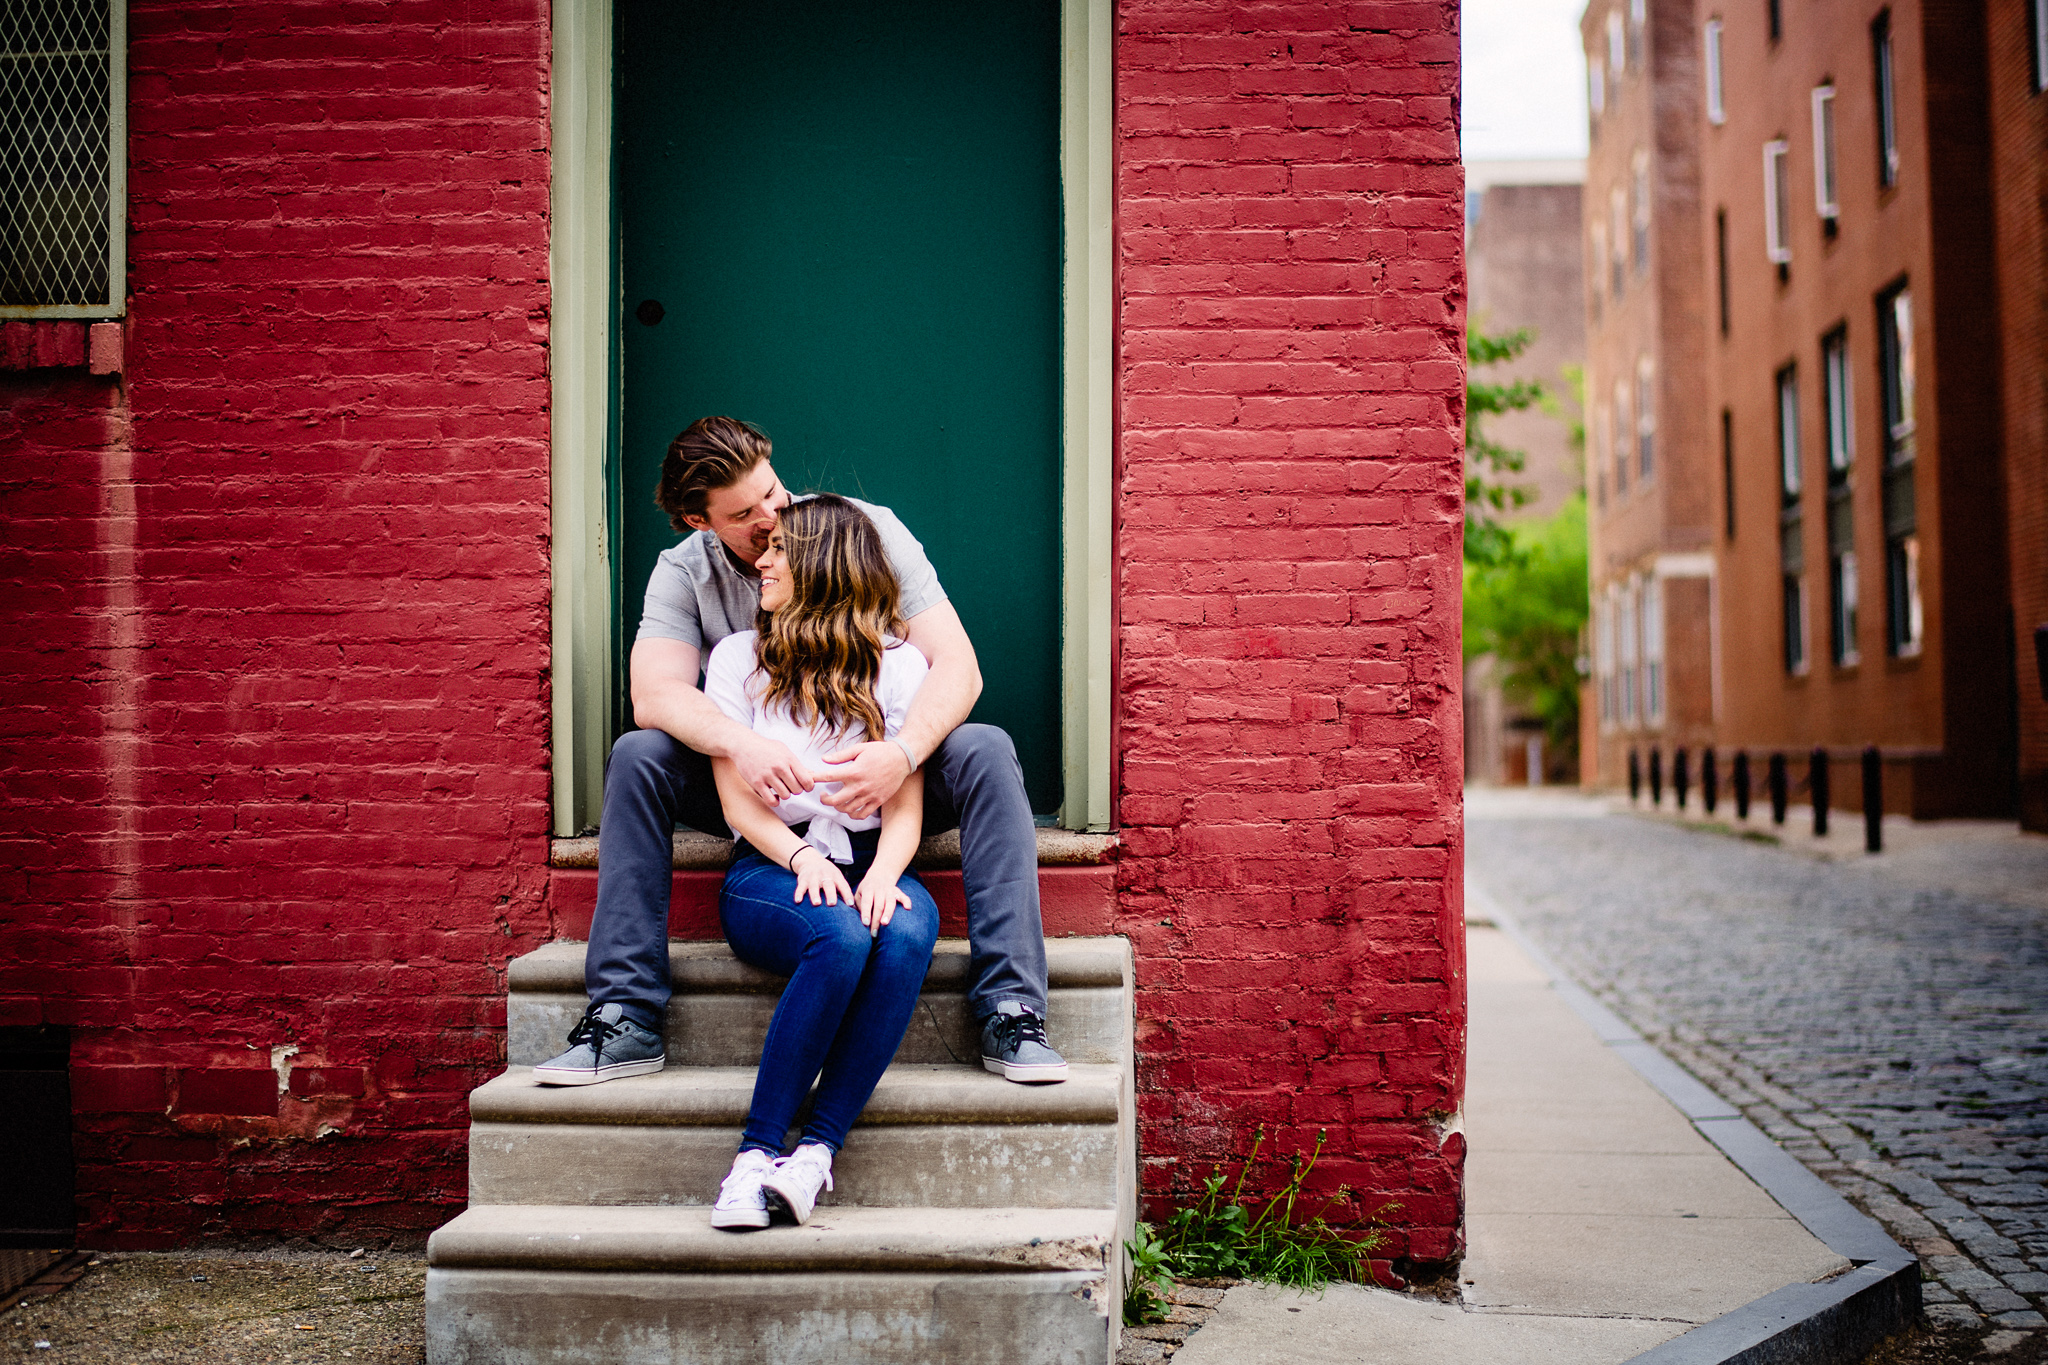 Philadelphia Old City Broad Street Engagement Photography-2019 -04-22-16-52-852_7121-Edit.jpg